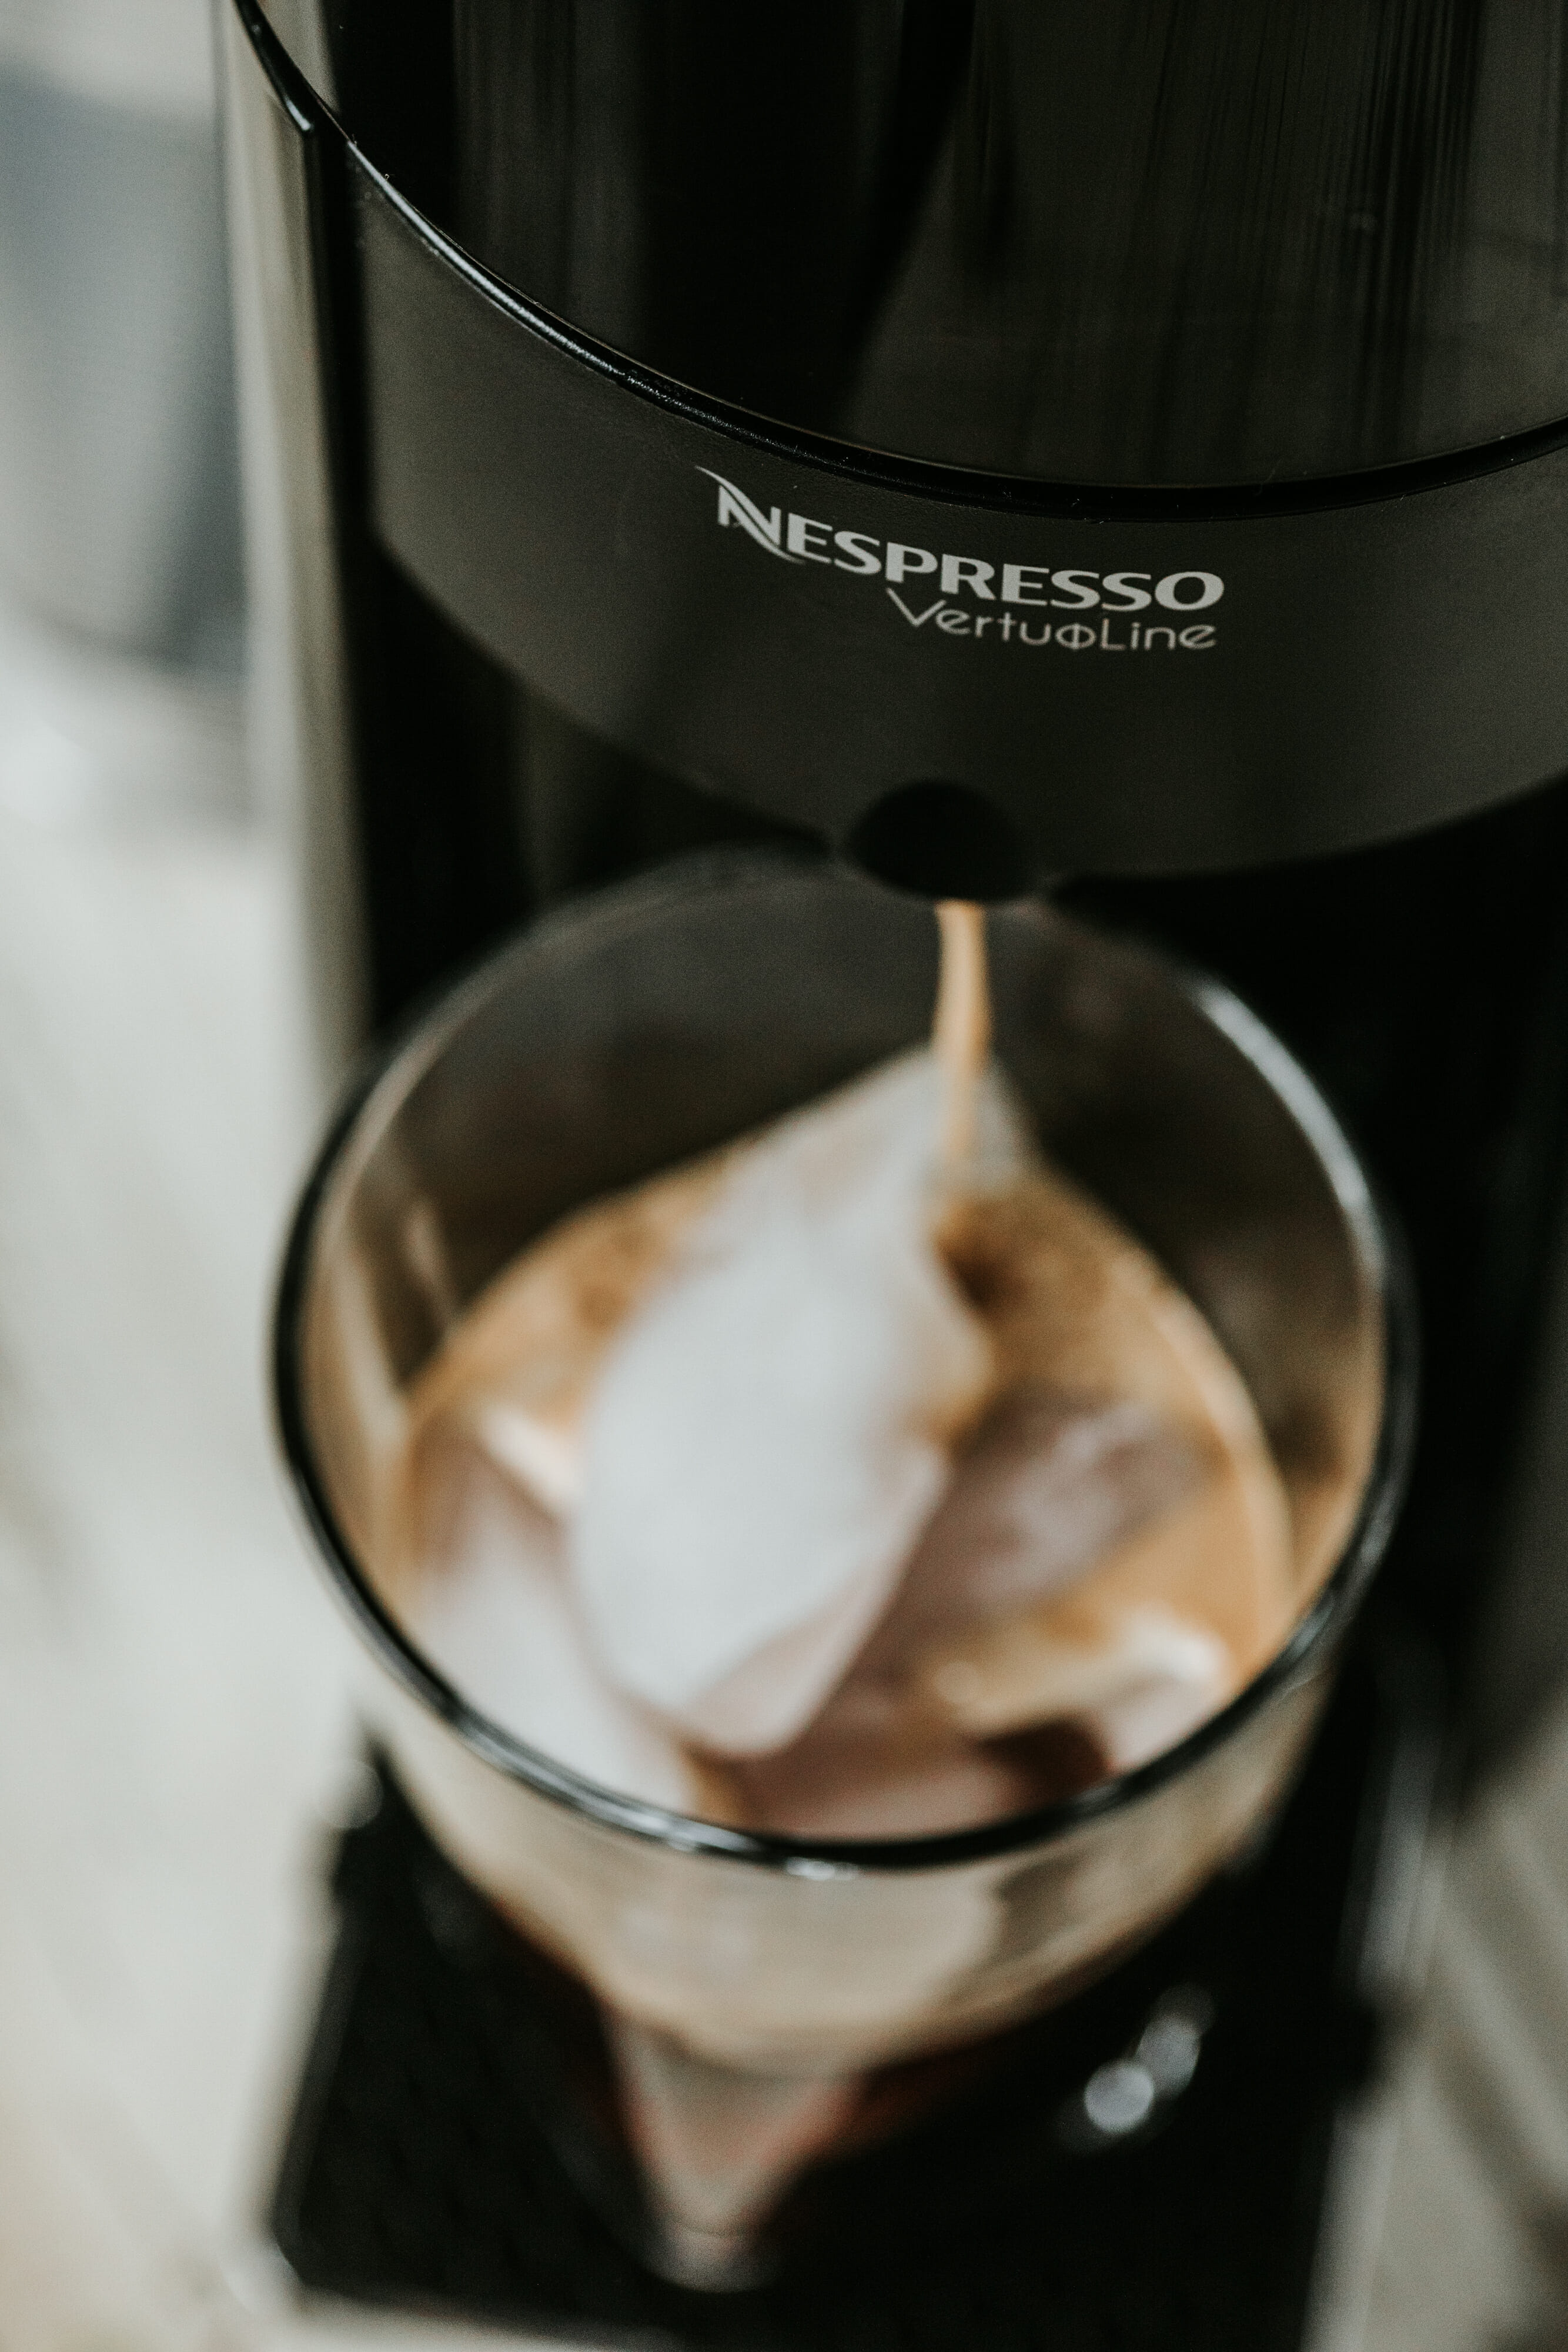 nespresso machine brewing